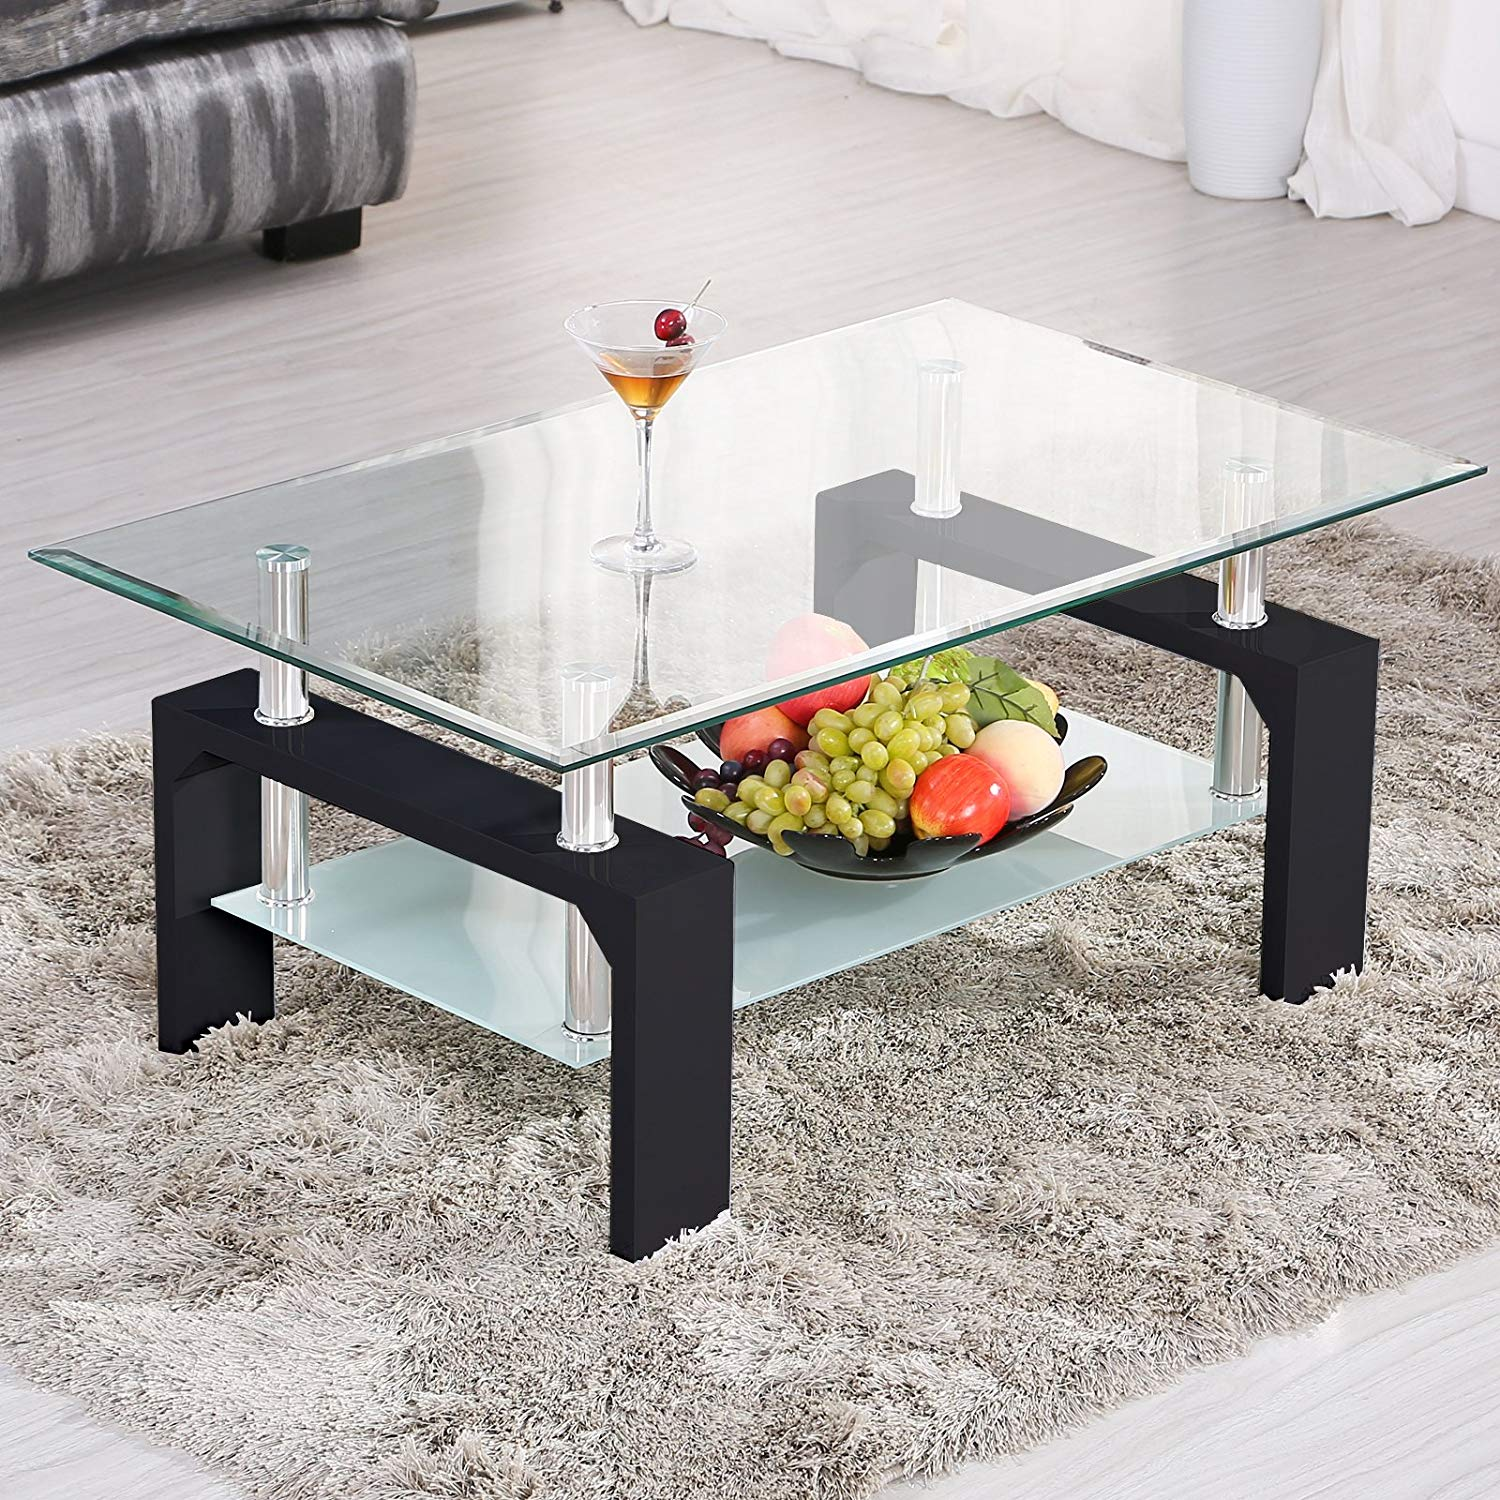 mecor rectangle glass coffee table modern side end tables with lower shelf black wooden legs suit for living room kitchen dining white corner square and bennett sofa review round